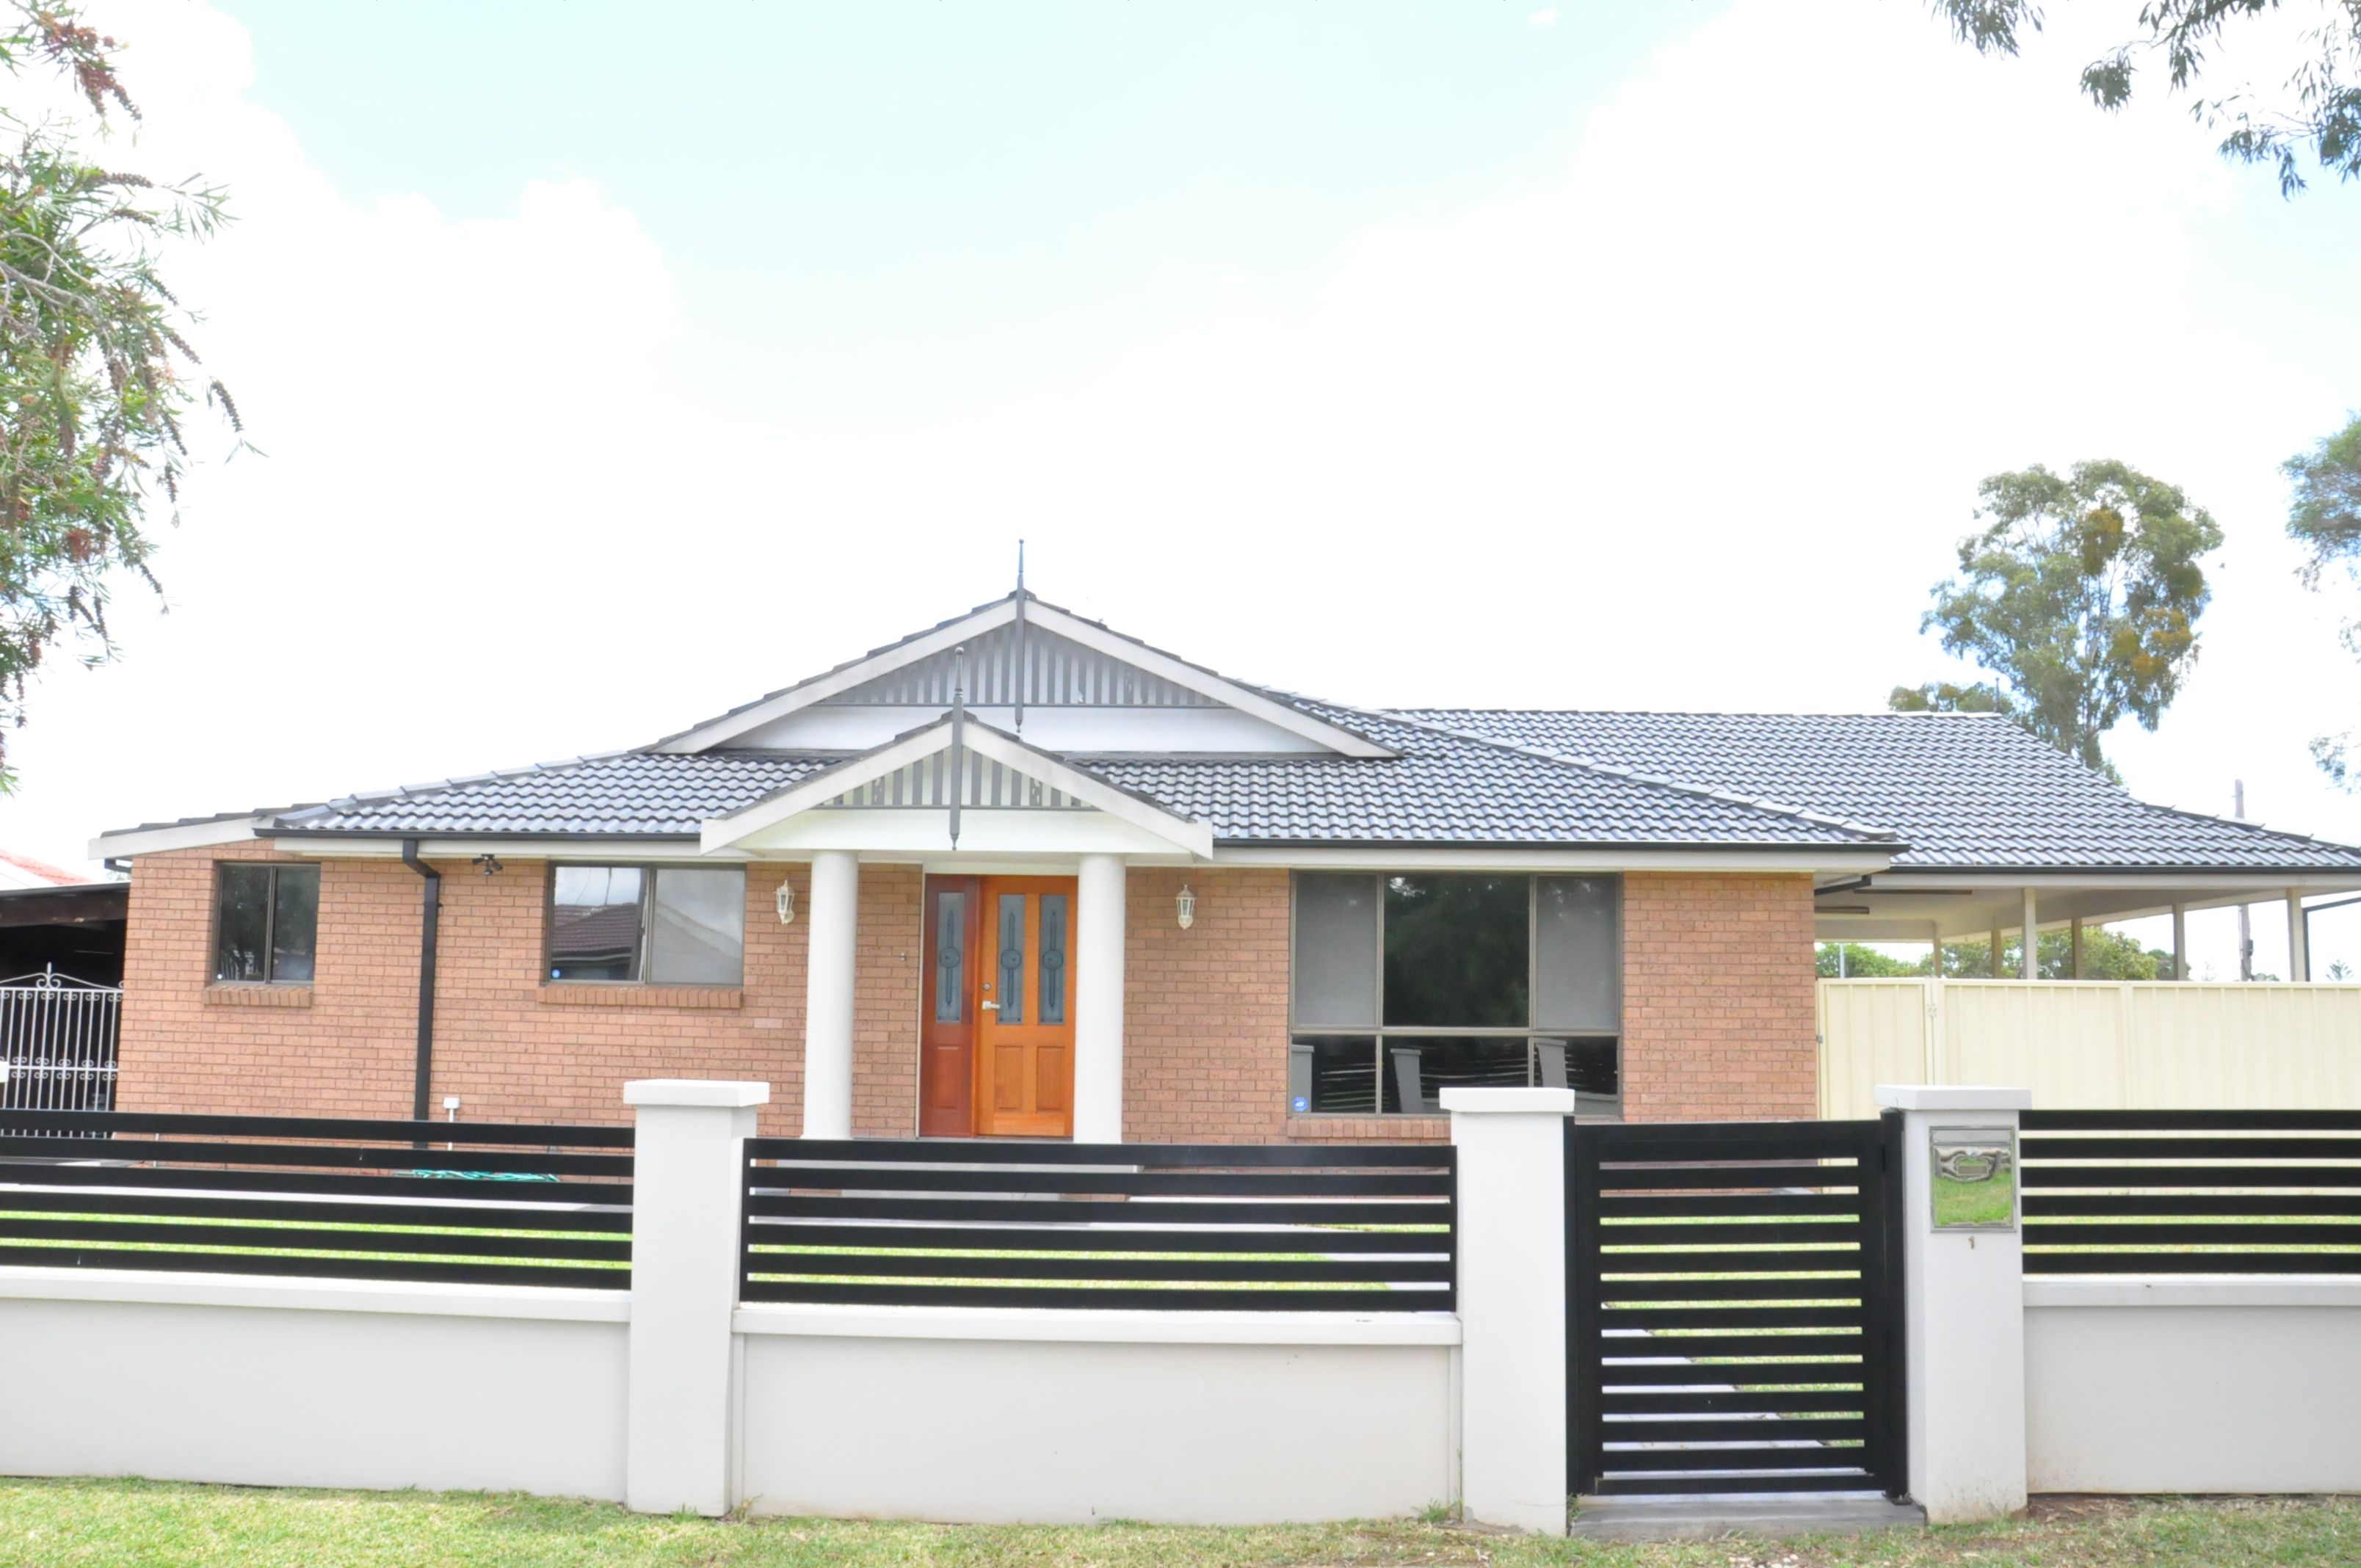 Leased1 Caines Crescent St. Marys NSW